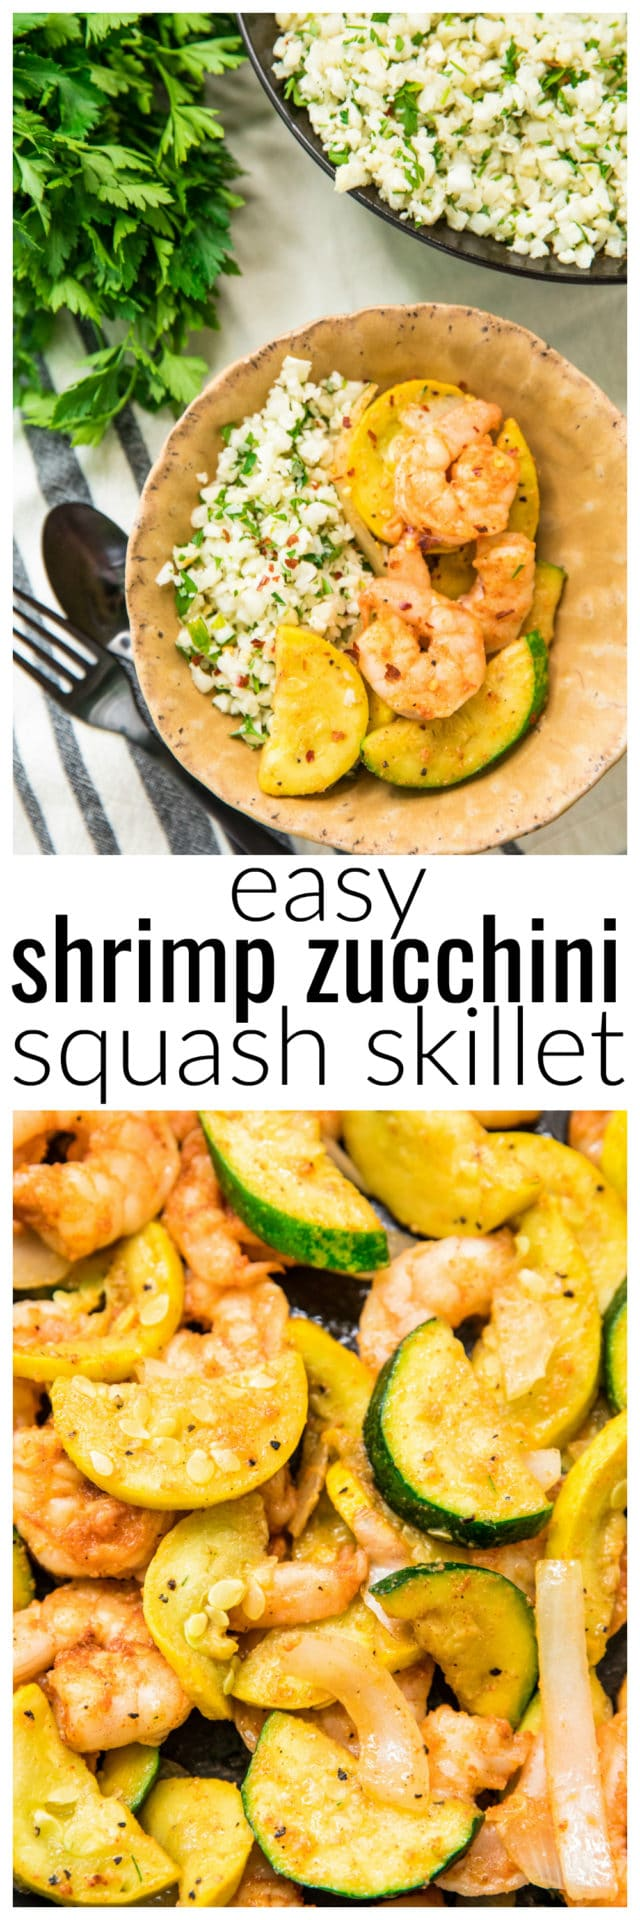 Pinterest image for Easy Shrimp Zucchini Squash Skillet